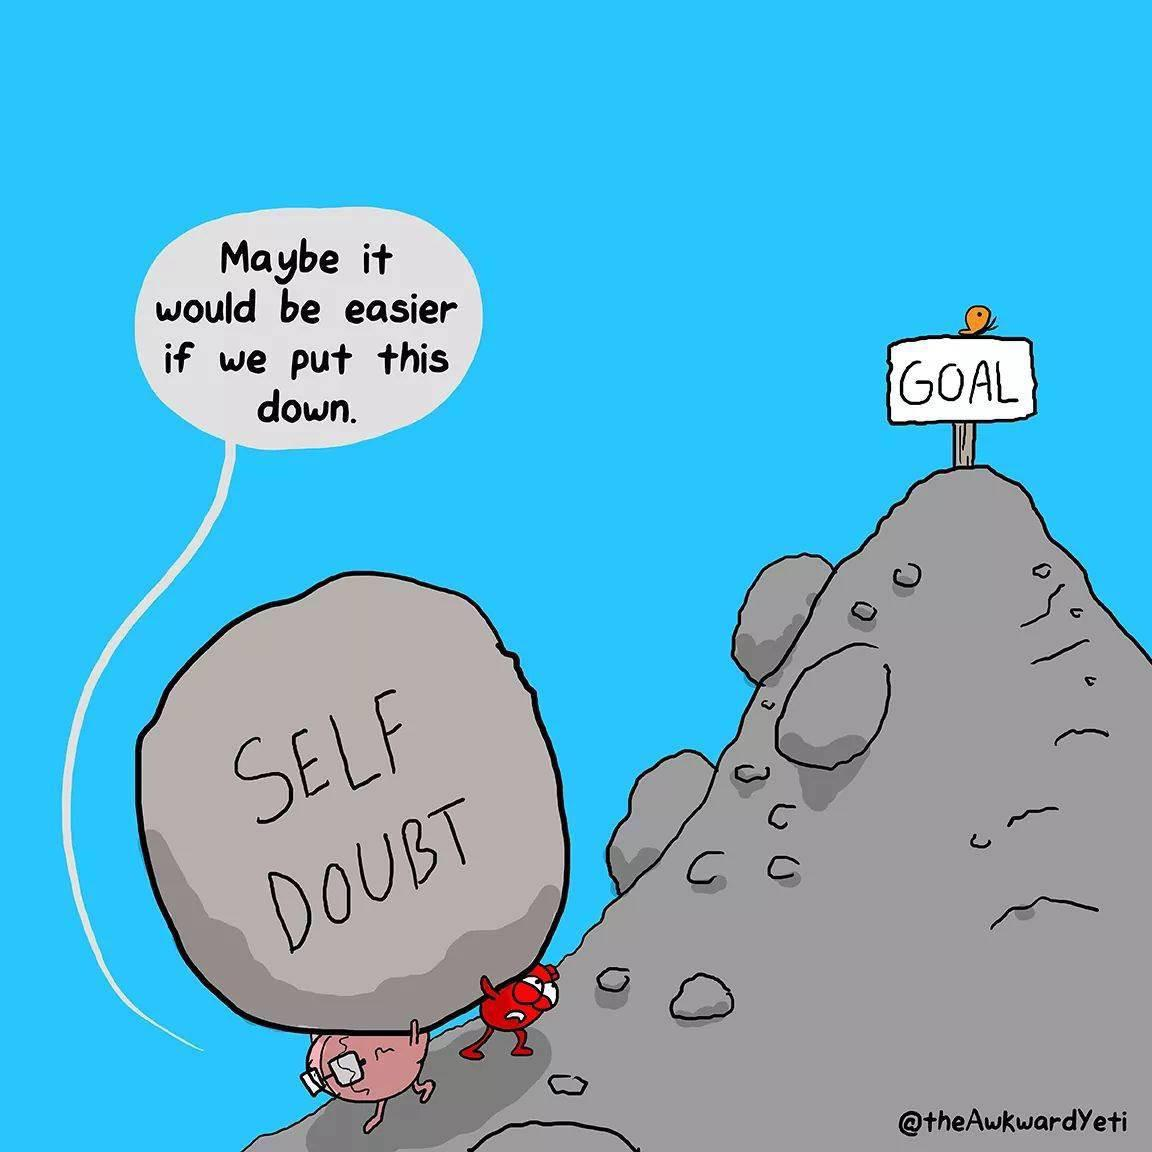 [Image] I seek strength, not to be greater than others, but to fight my greatest enemy, the doubts within myself. (Credit@theAwkwardYeti)